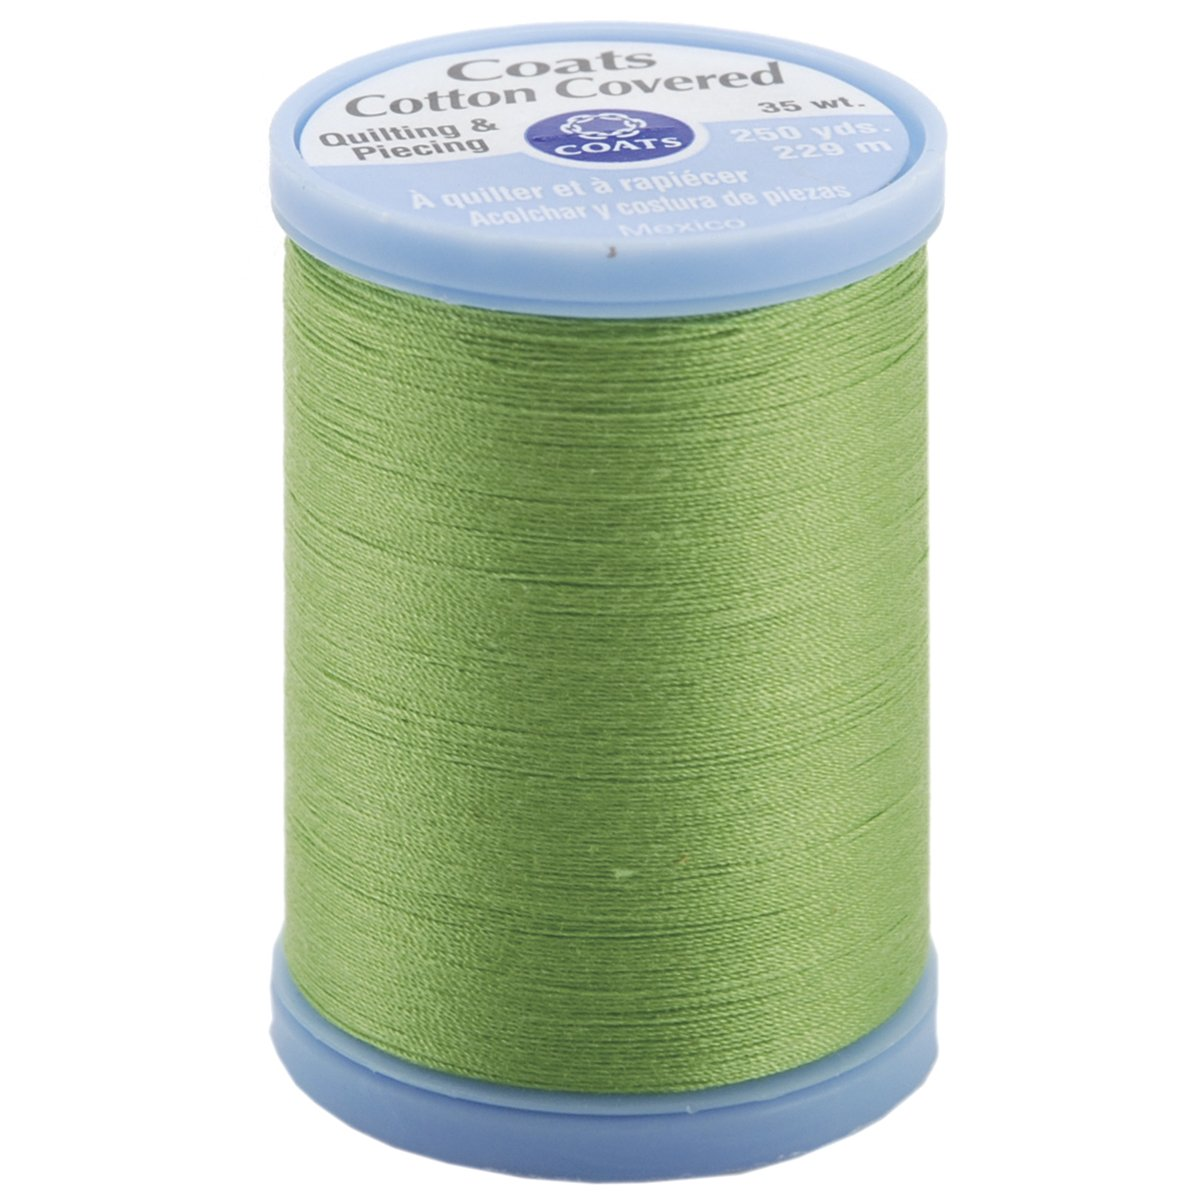 Cotton Covered Quilting & Piecing Thread 250yd-Lime Green Coats S925-6840 027781